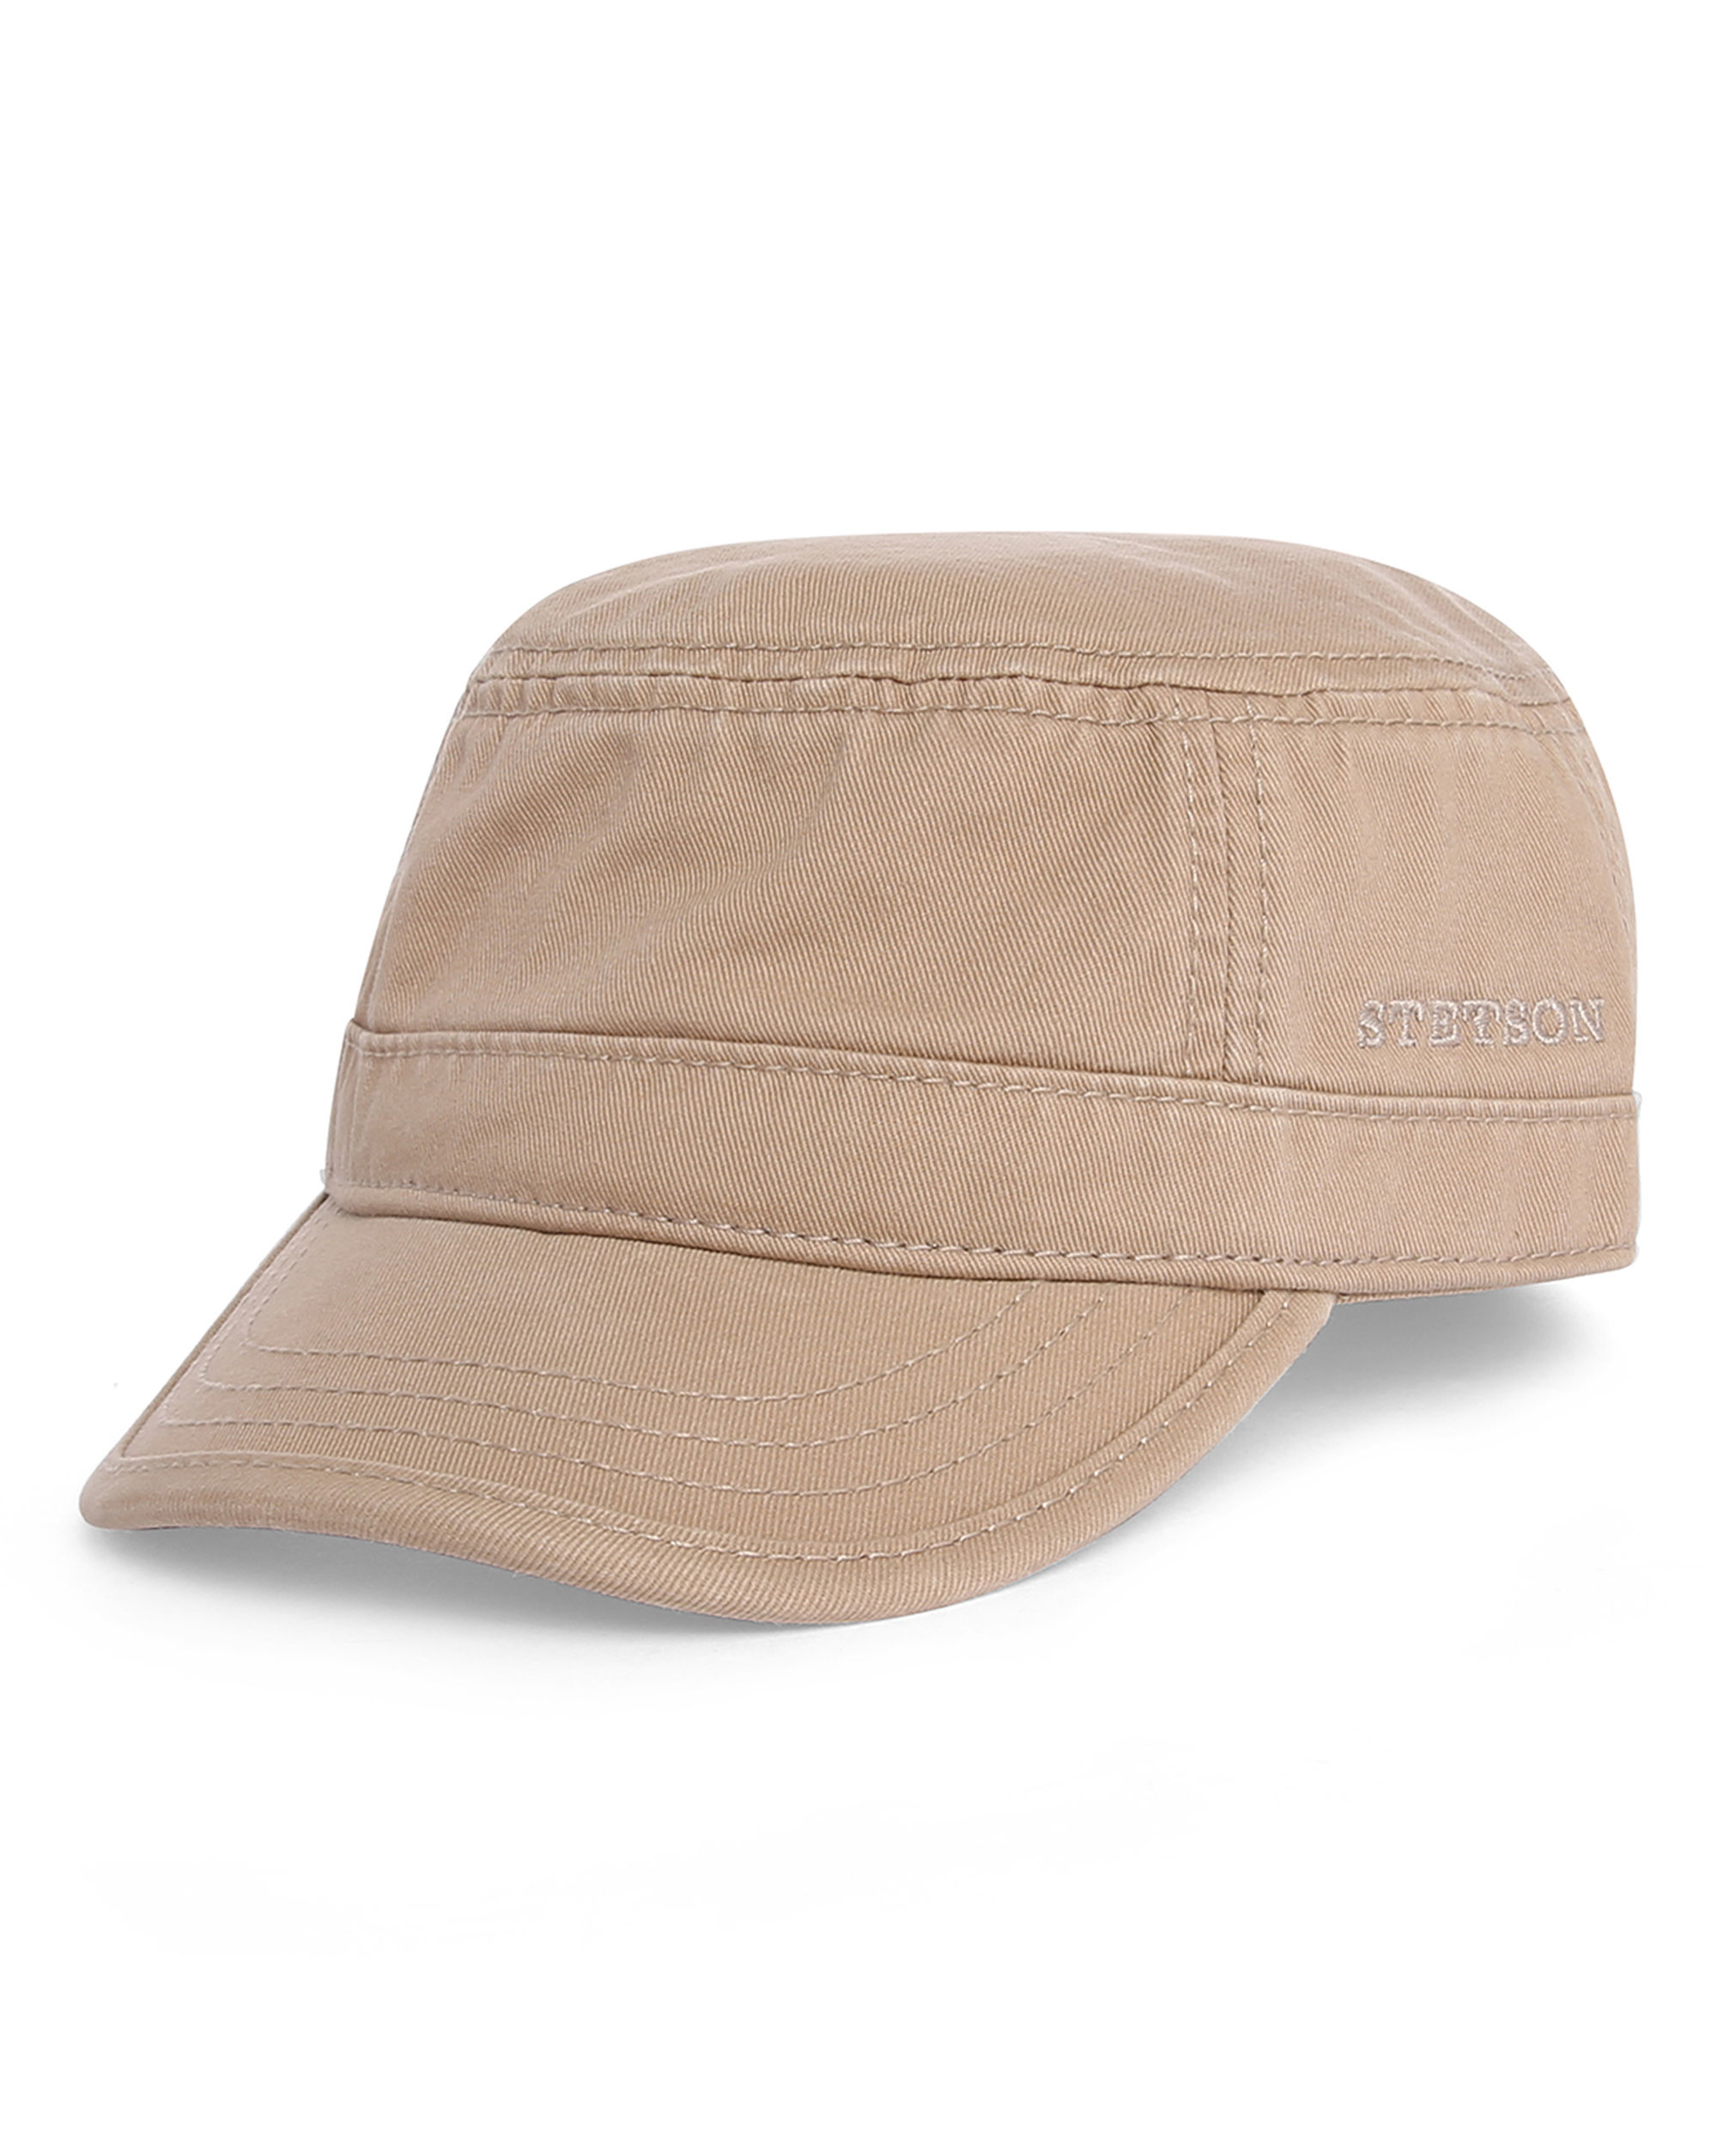 Stetson Brown Hatteras Donegal Flat Cap In Brown For Men